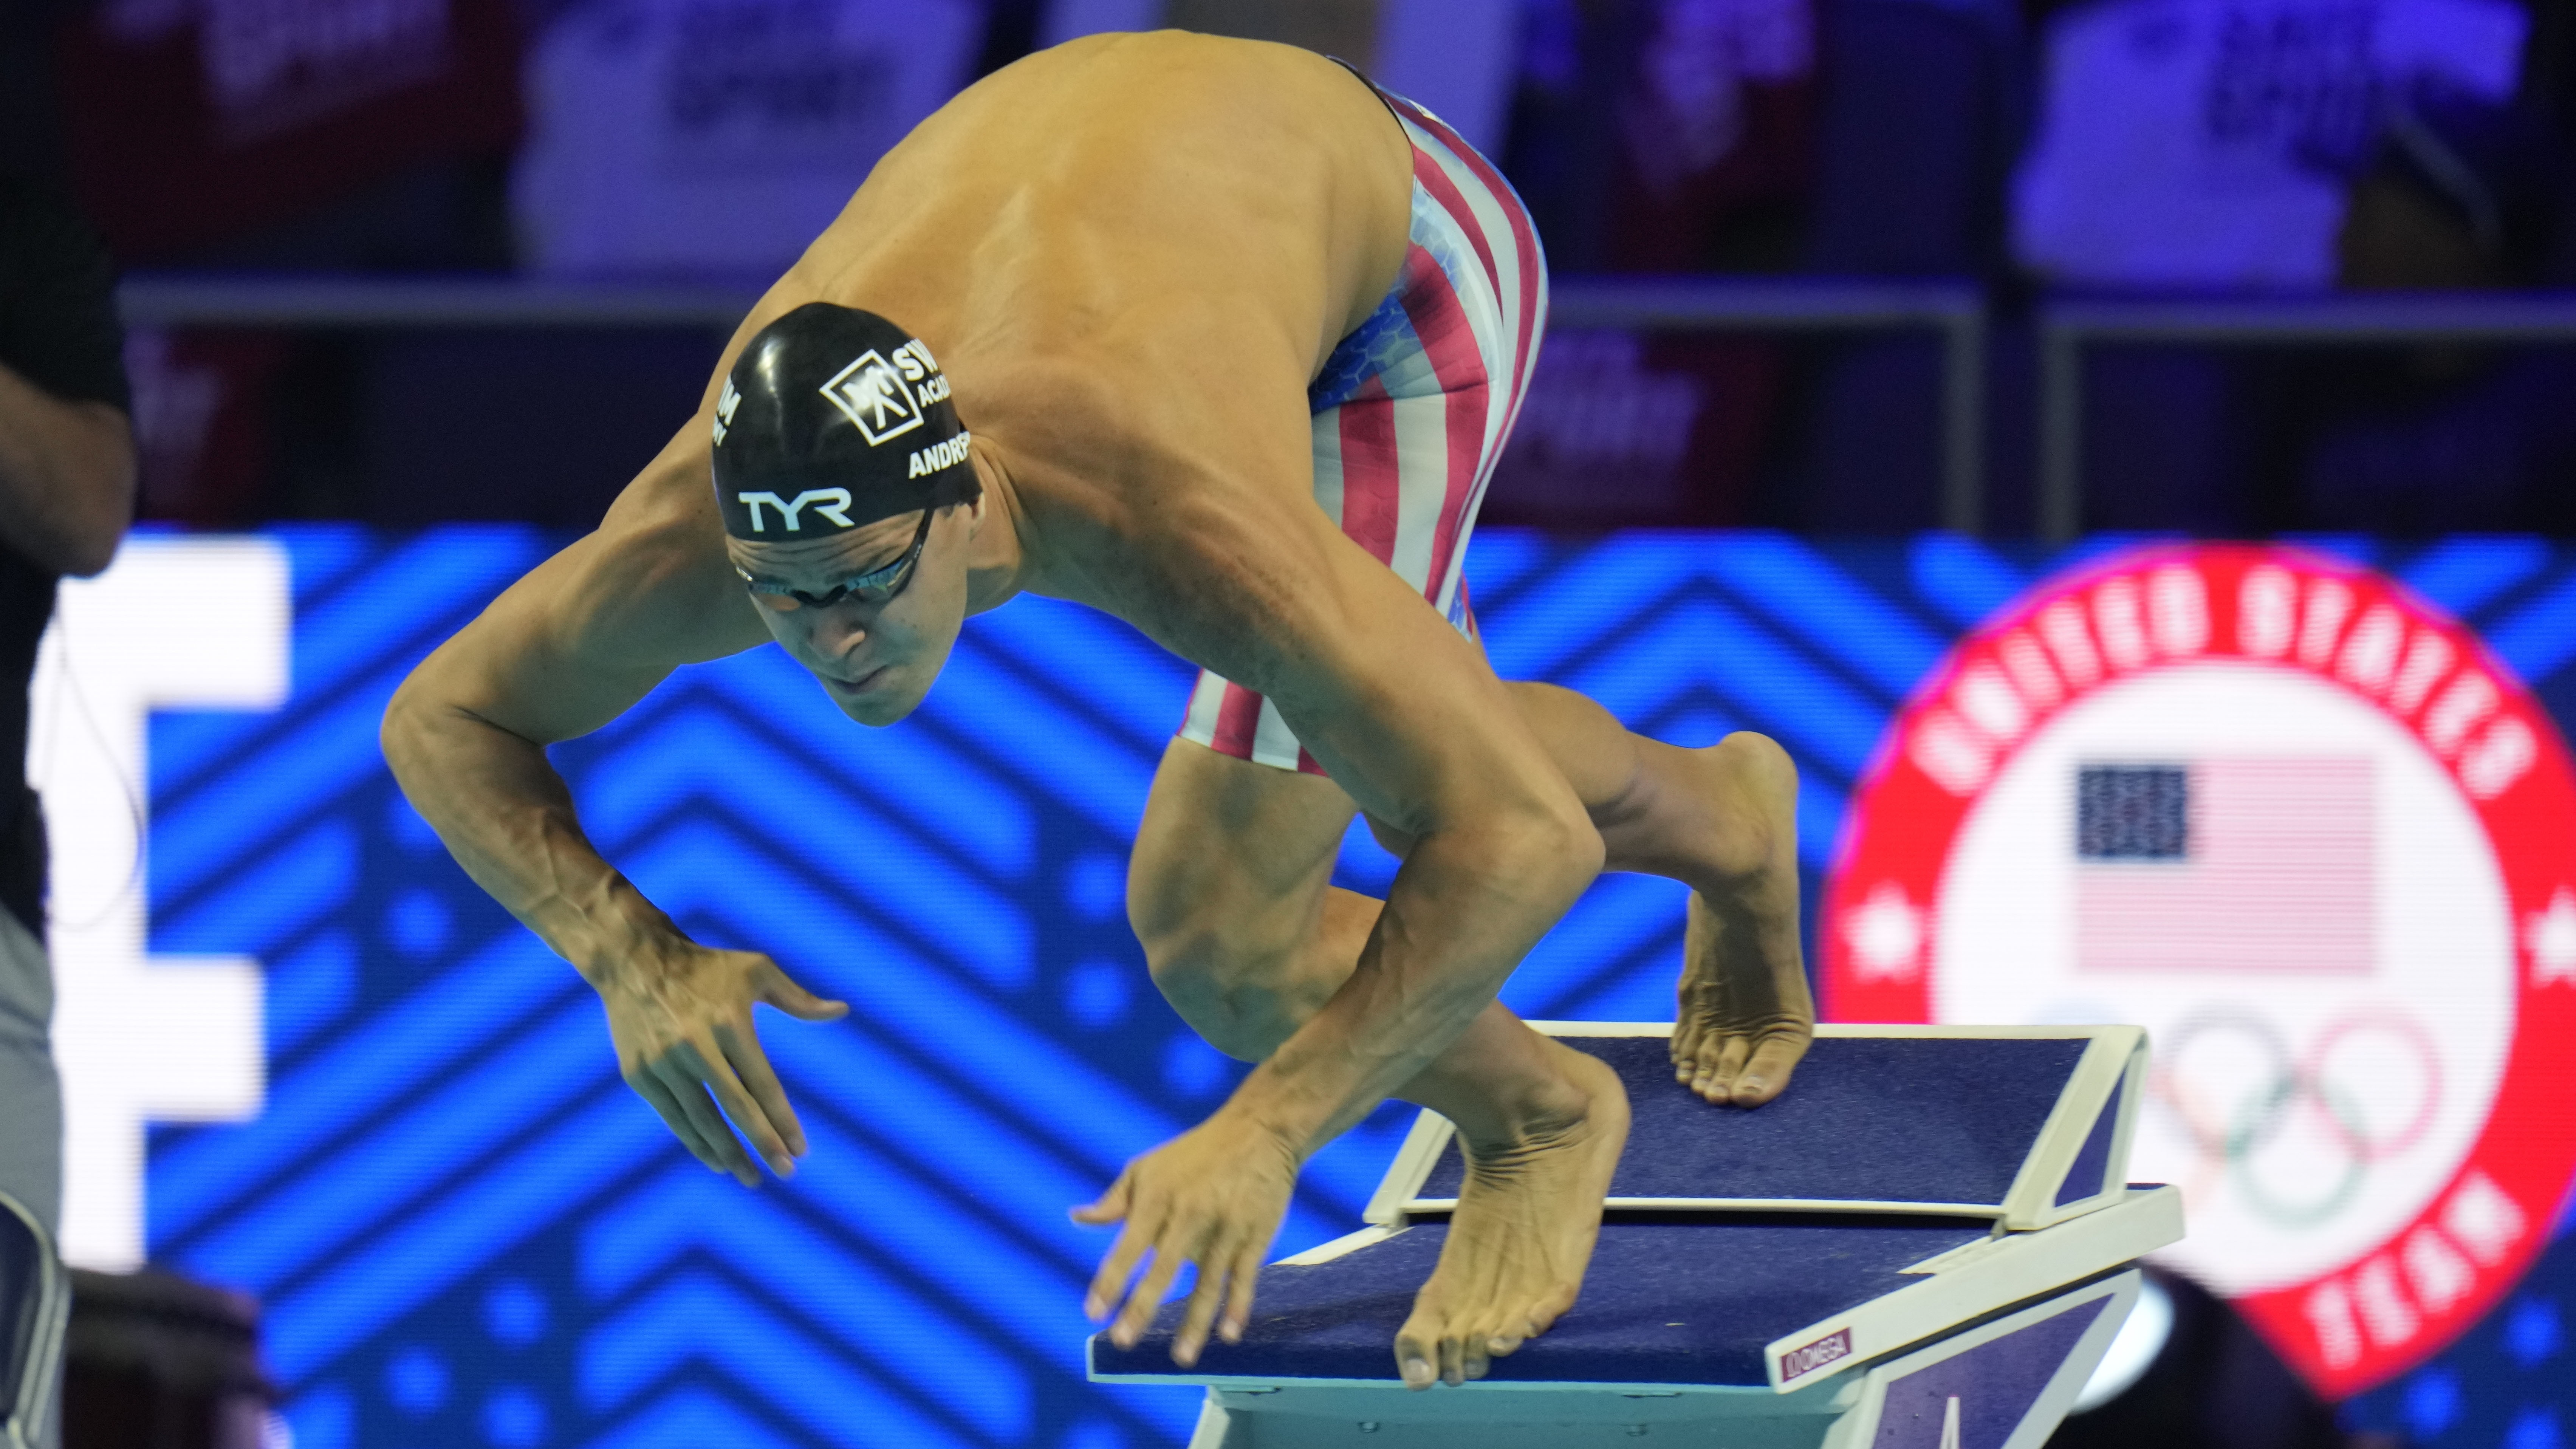 Unvaccinated US swimmer sparks debate as Olympics start - fox